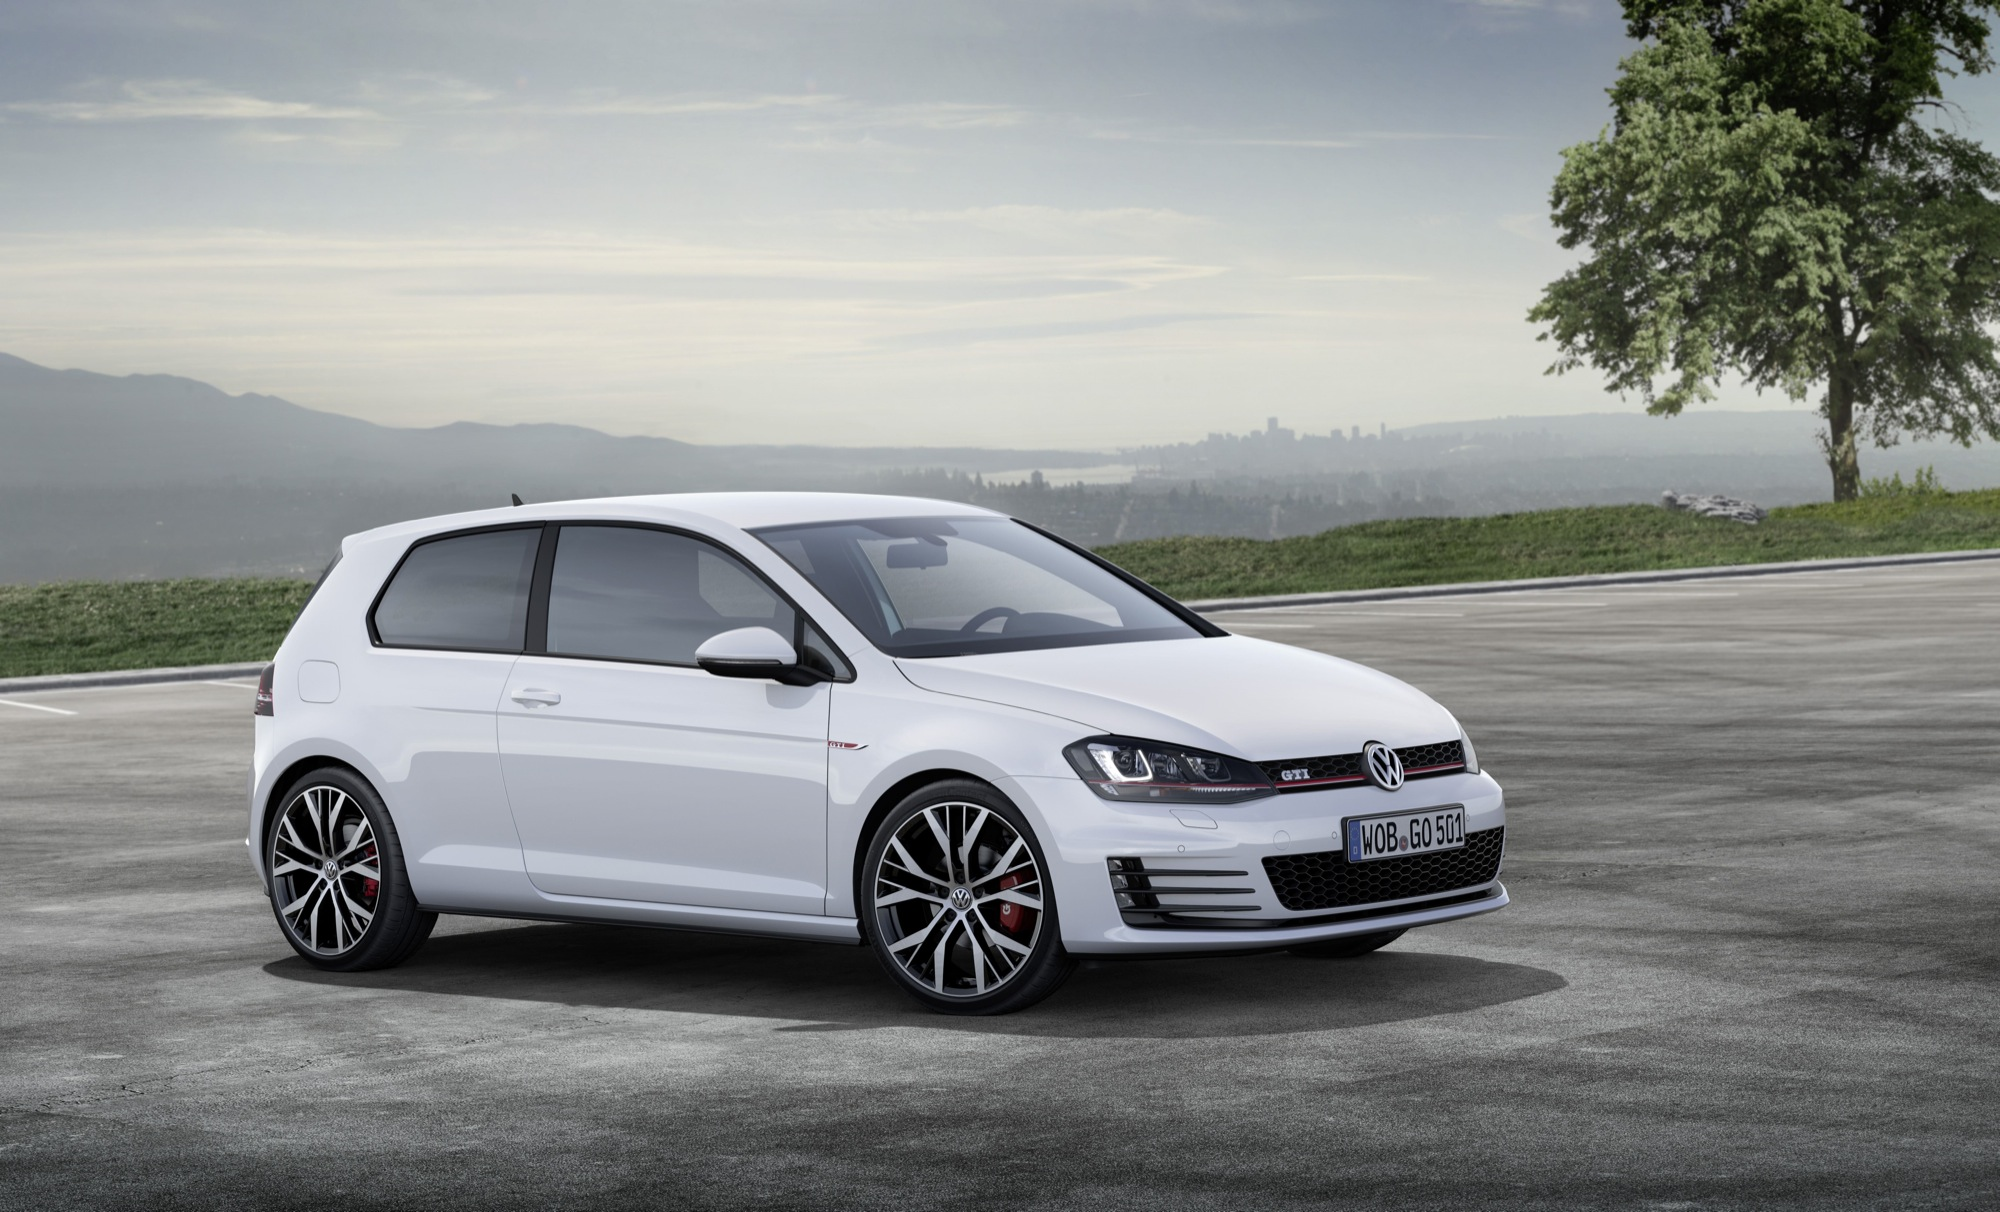 2015 volkswagen golf gti motrolix. Black Bedroom Furniture Sets. Home Design Ideas